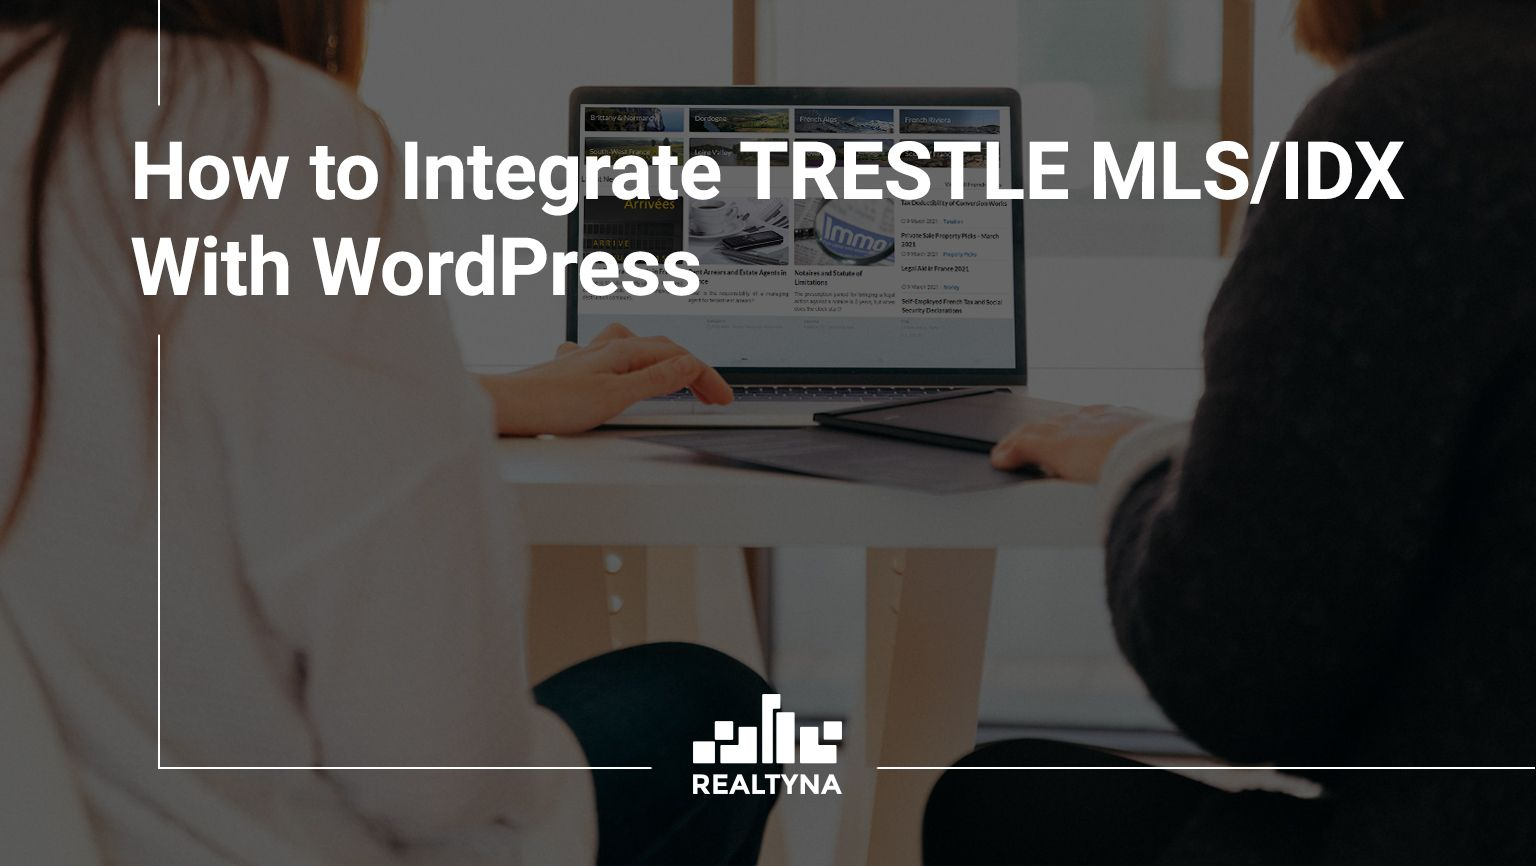 How to Integrate TRESTLE MLS/IDX With WordPress